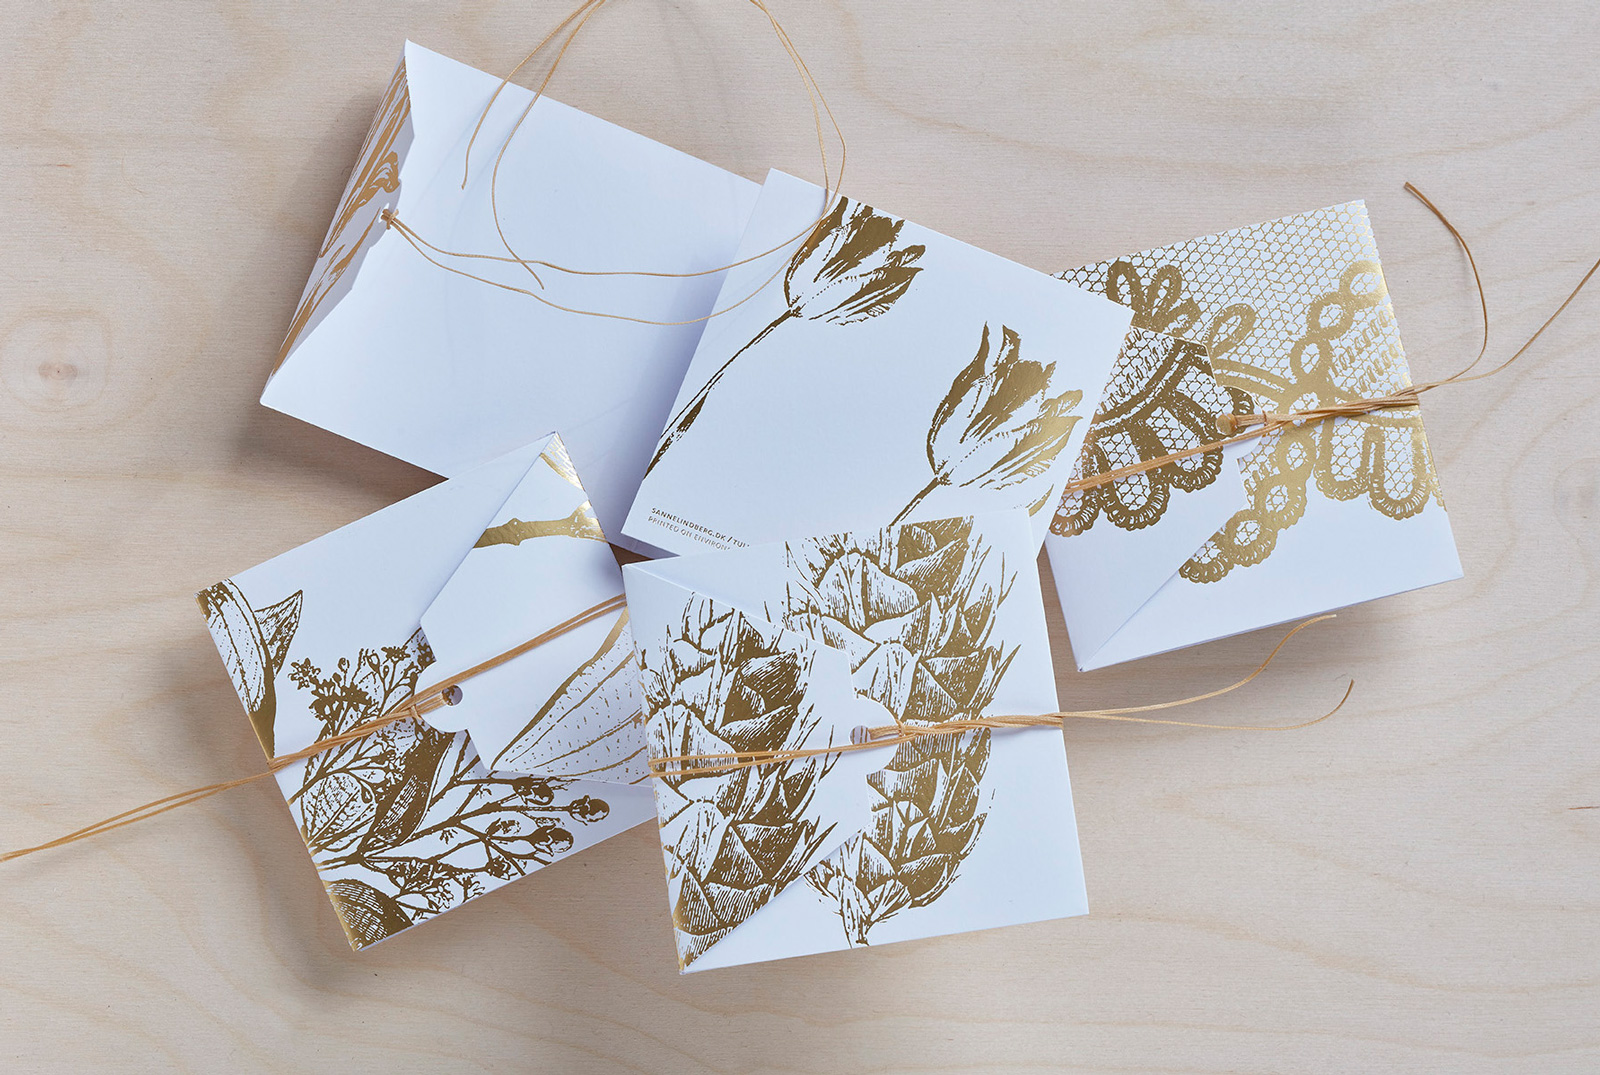 Sanne Lindberg Cards in GOLD. Shiny, embossed GOLD on crispy white. The cards measure, when folded; 12 cm x 12 cm. Folds out to triple size.